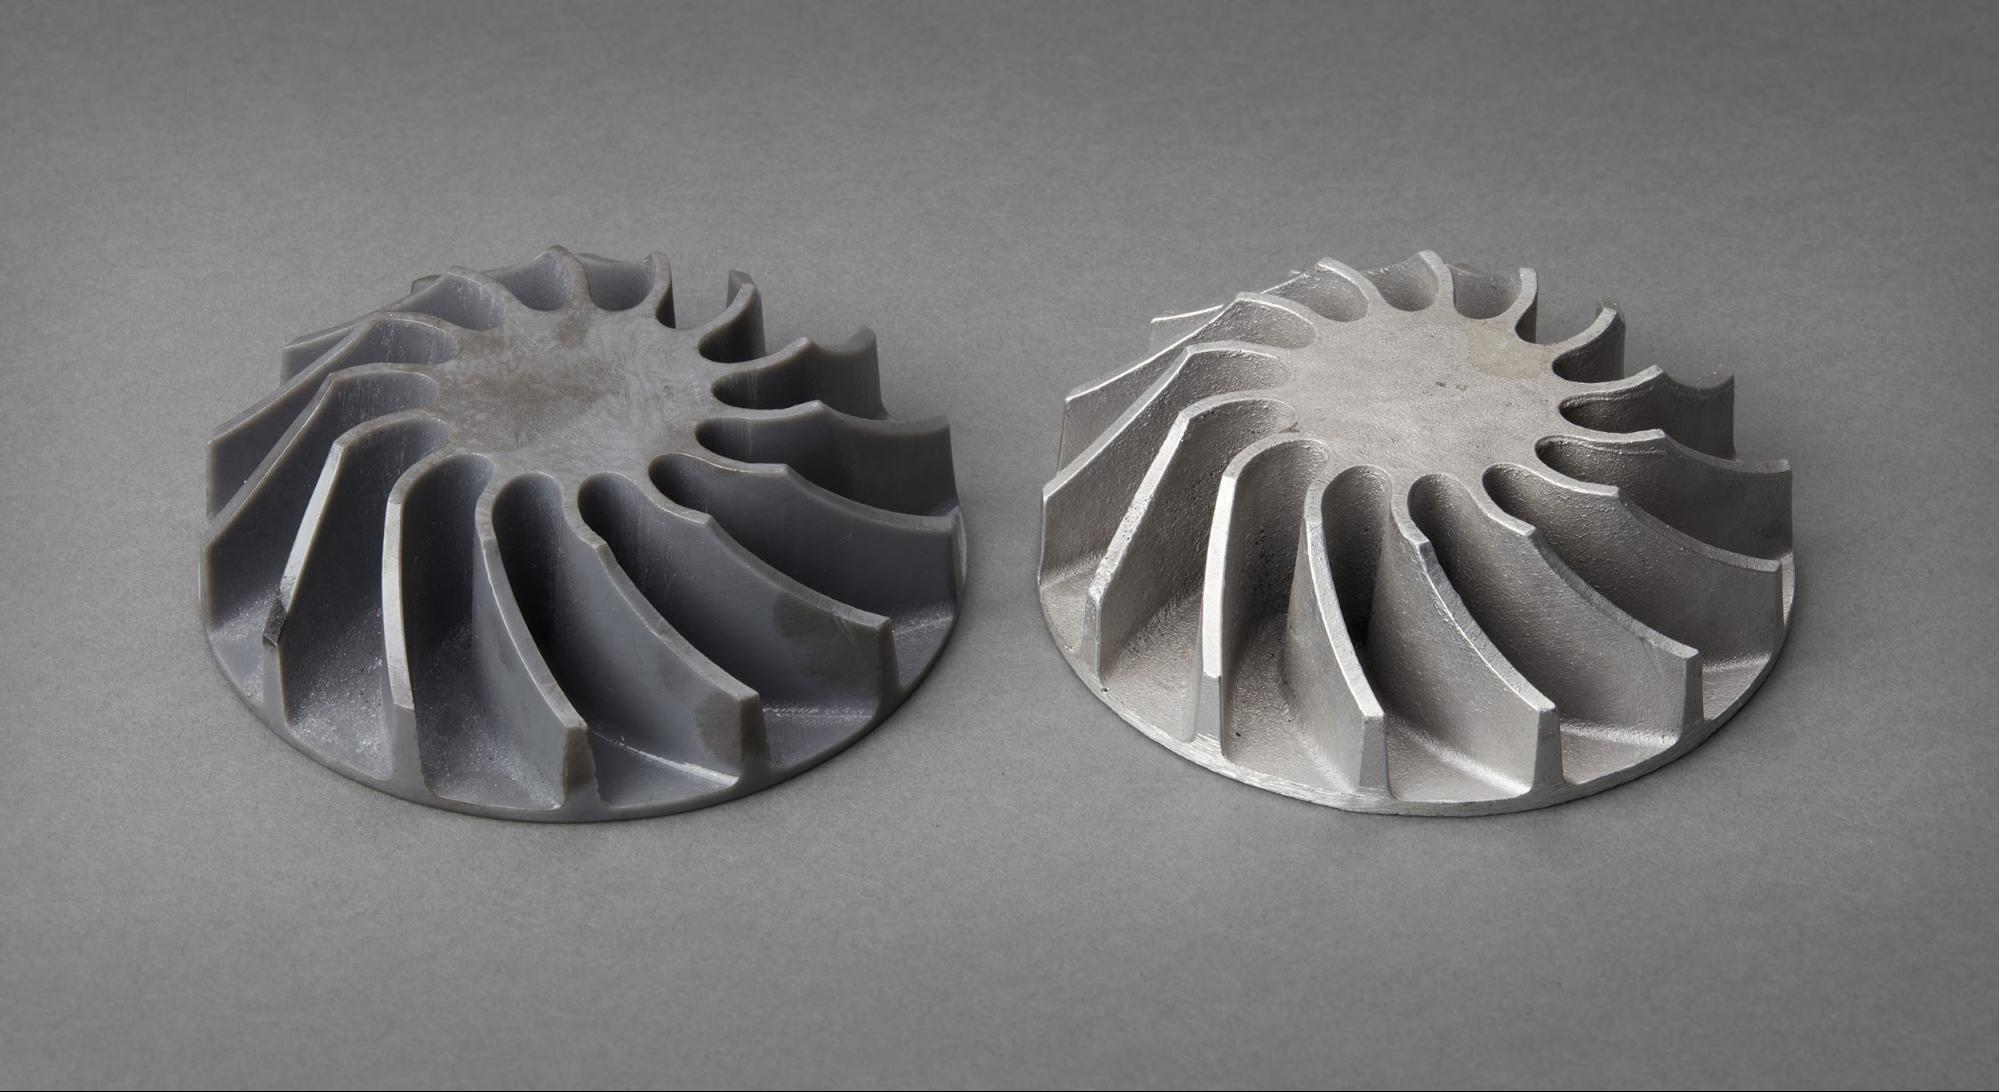 3D printed impeller cast in metal.